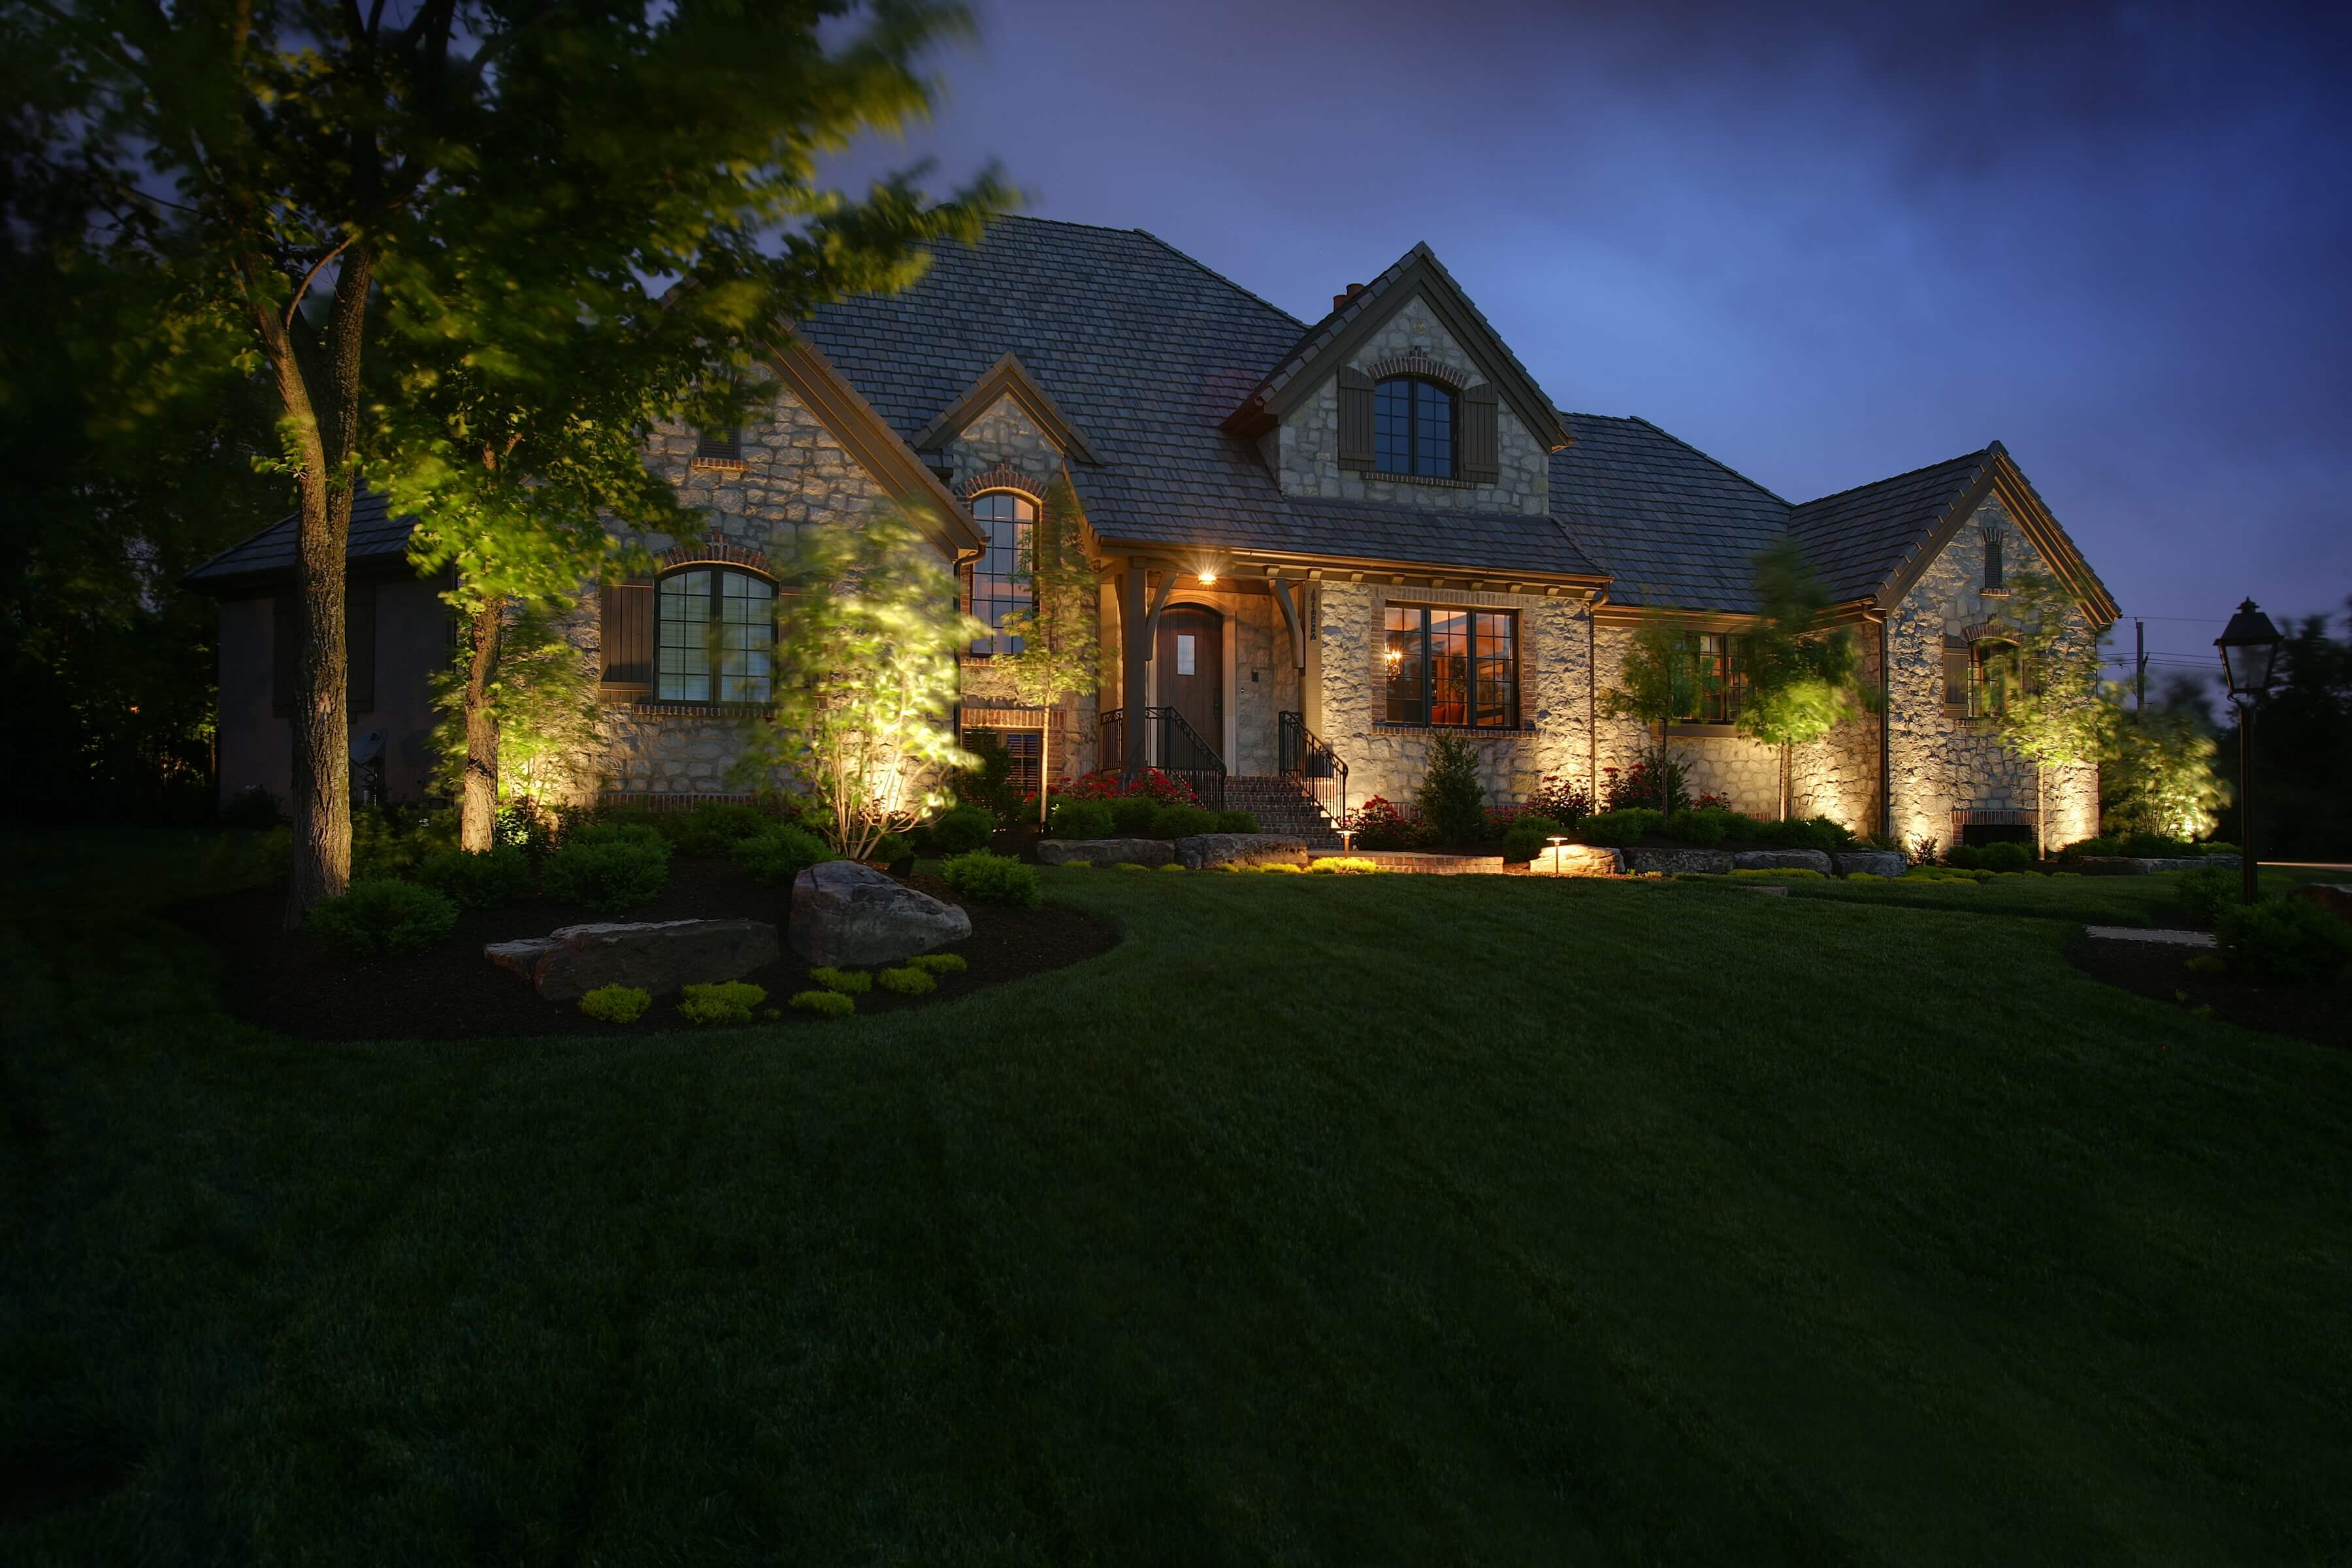 After image of home with lighting